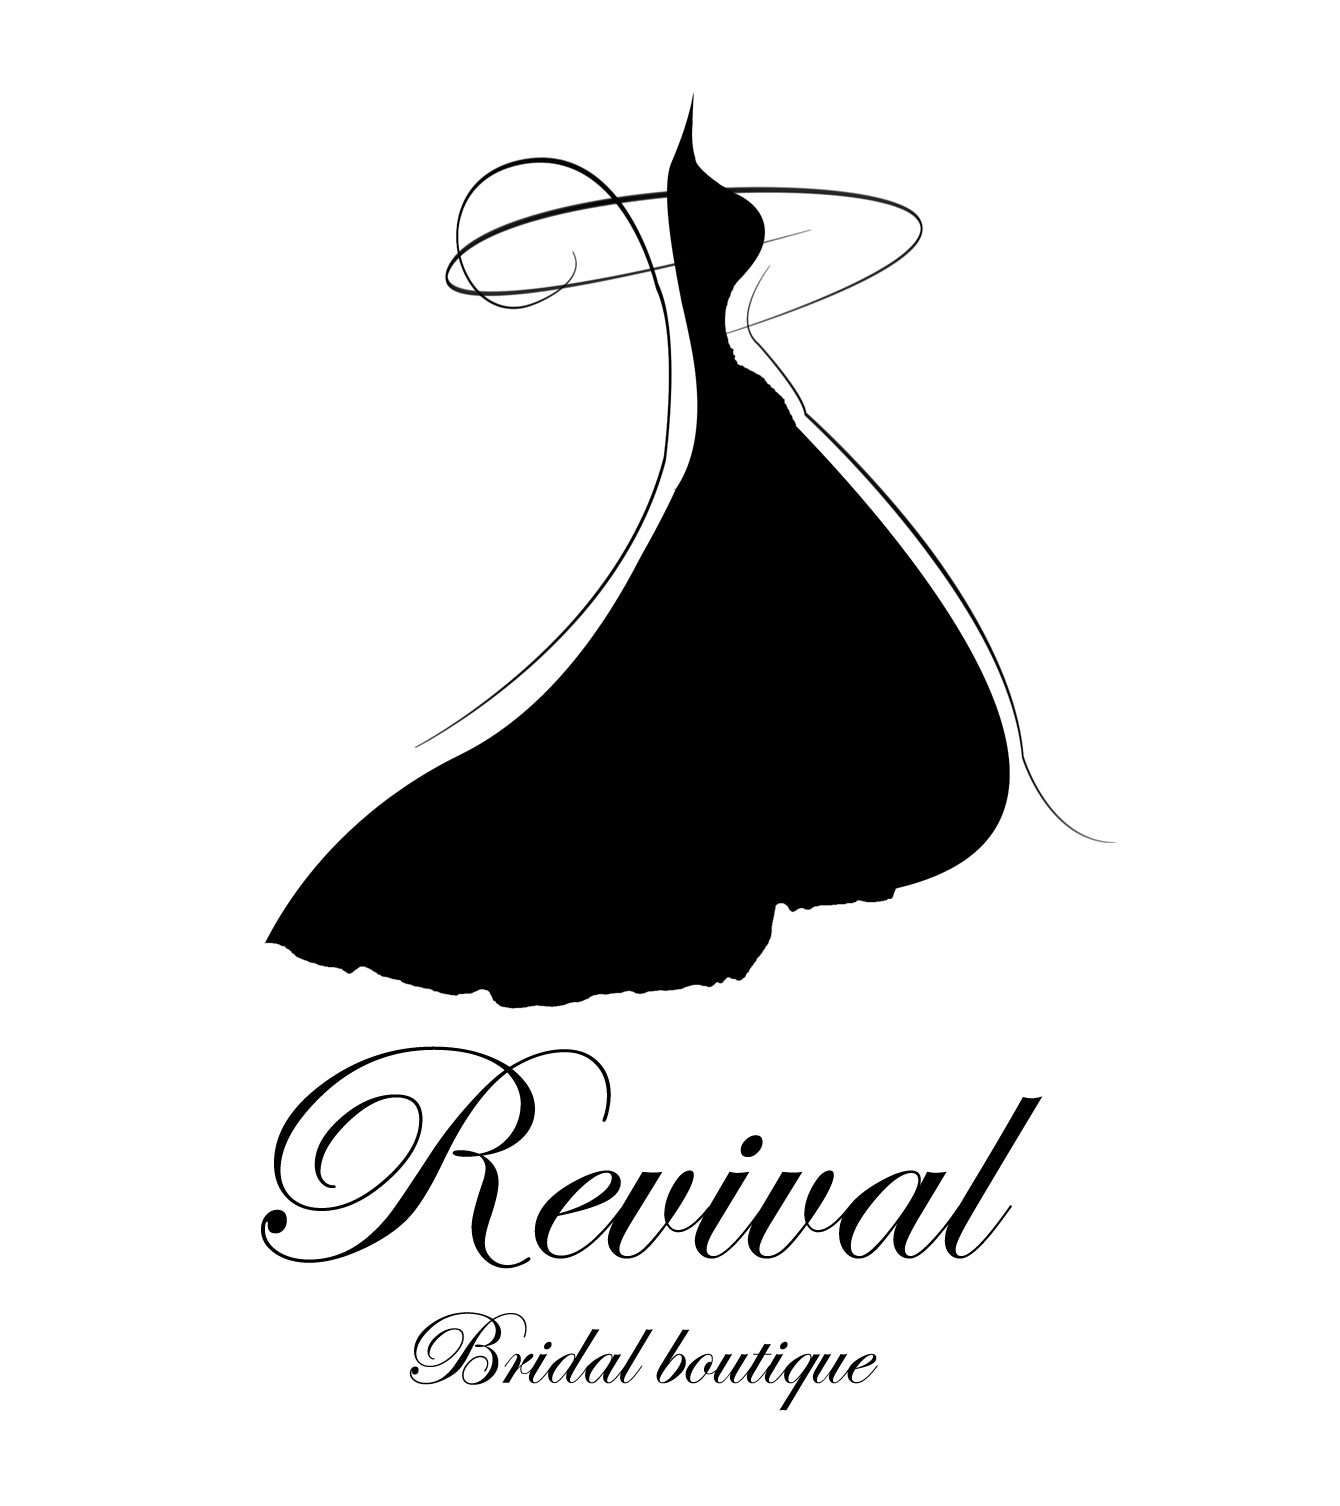 Logo Design For Bridal Company